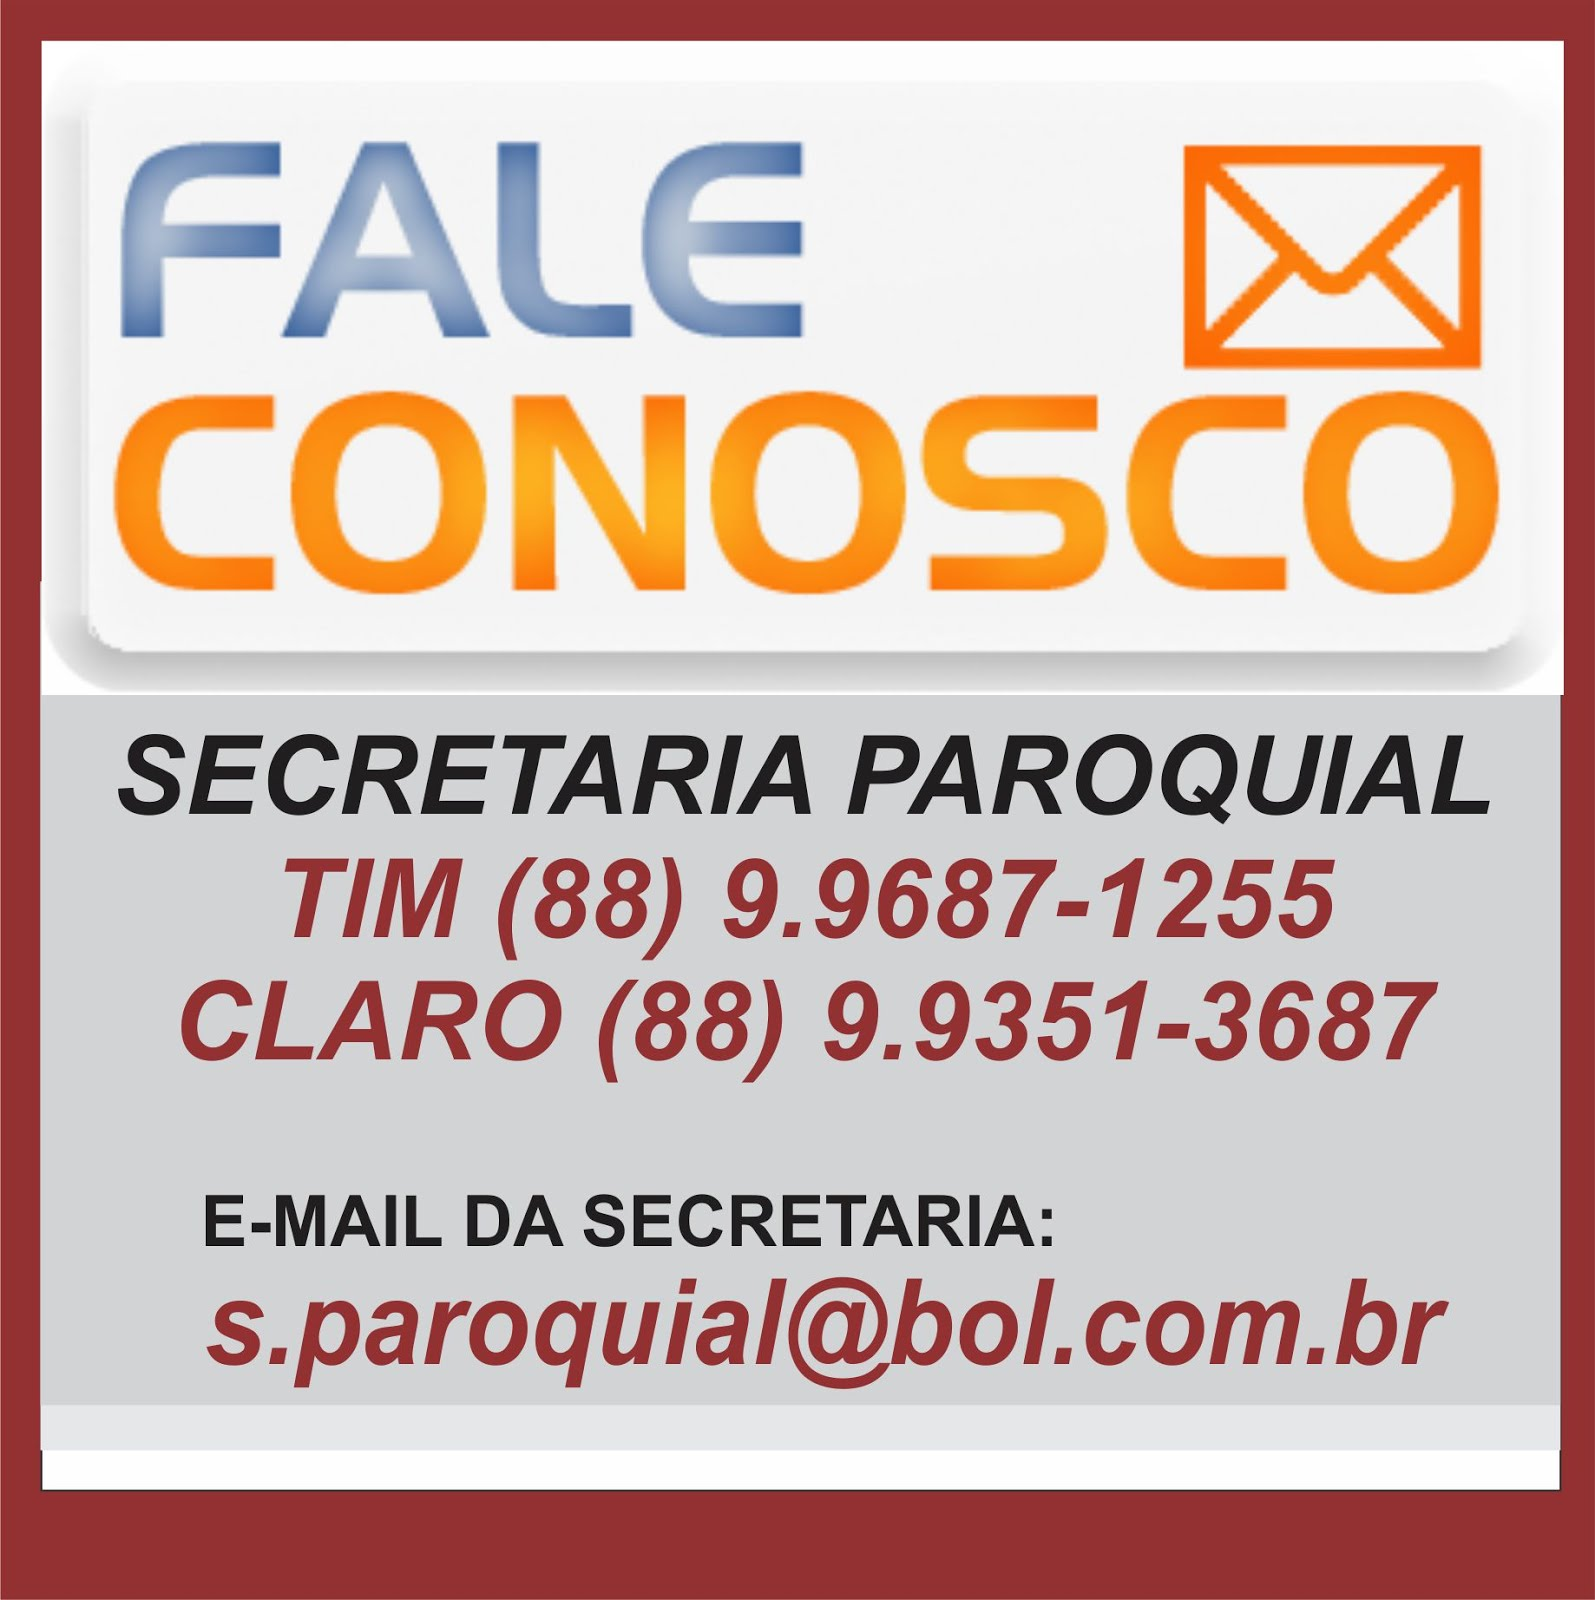 Fale Conosco